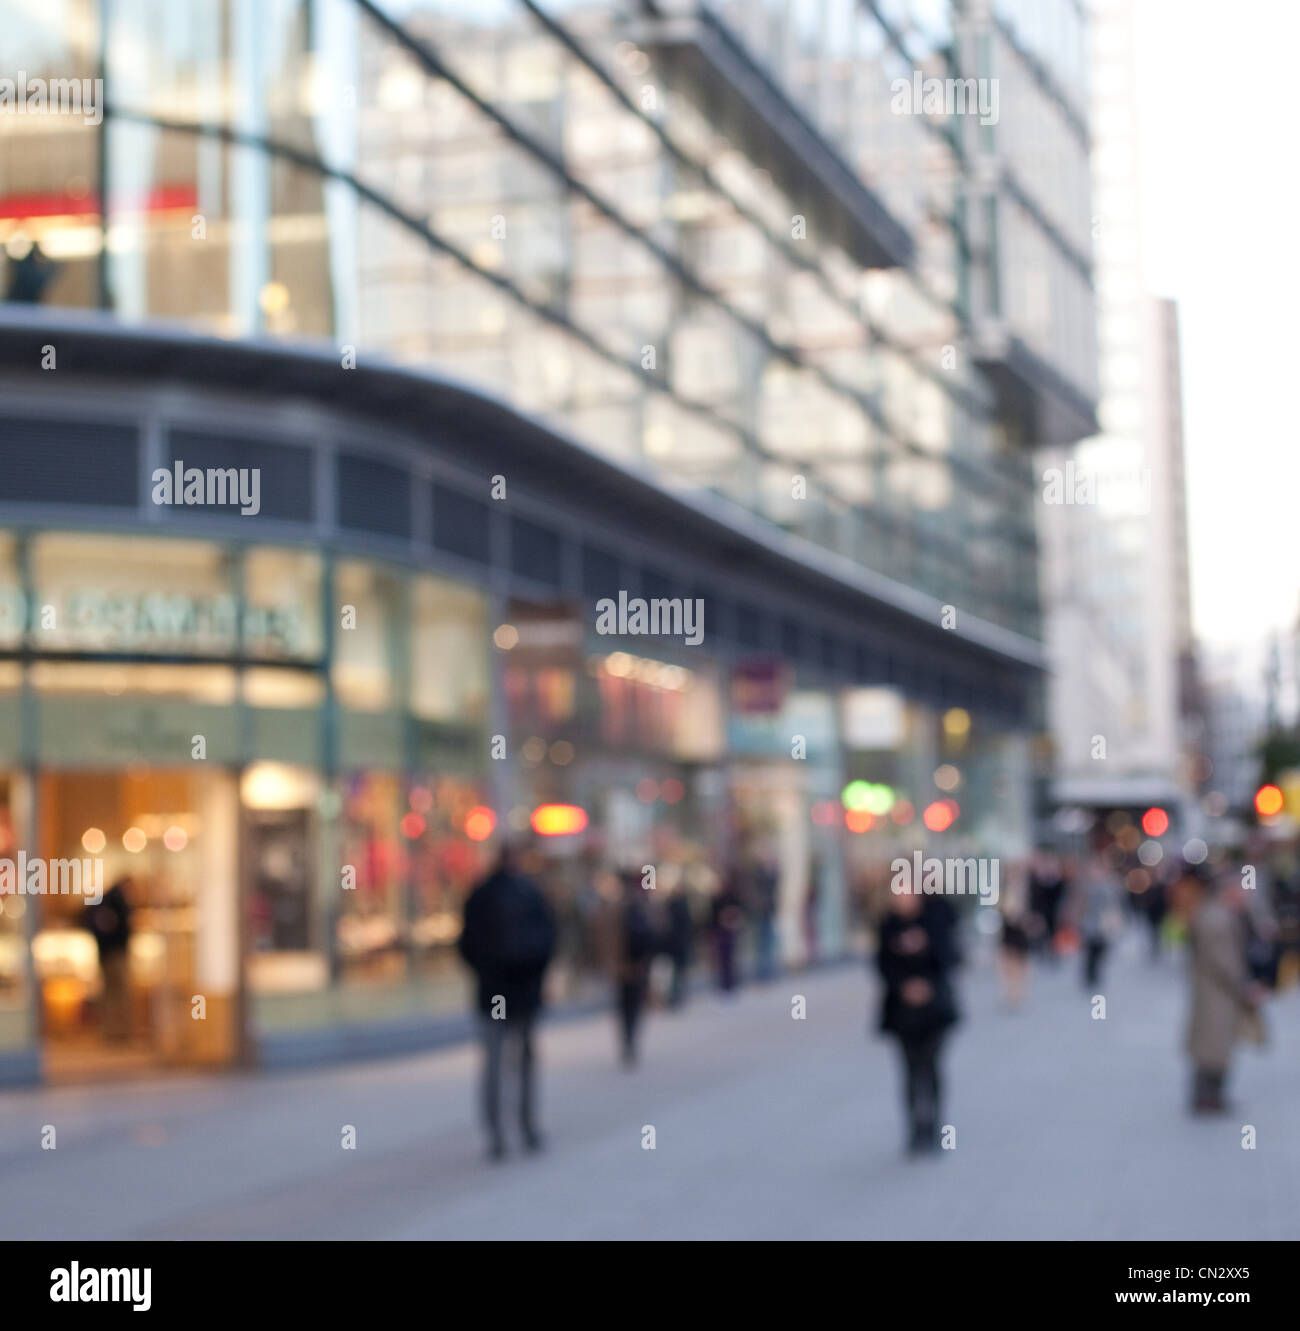 Blurred street scene, London, England - Stock Image